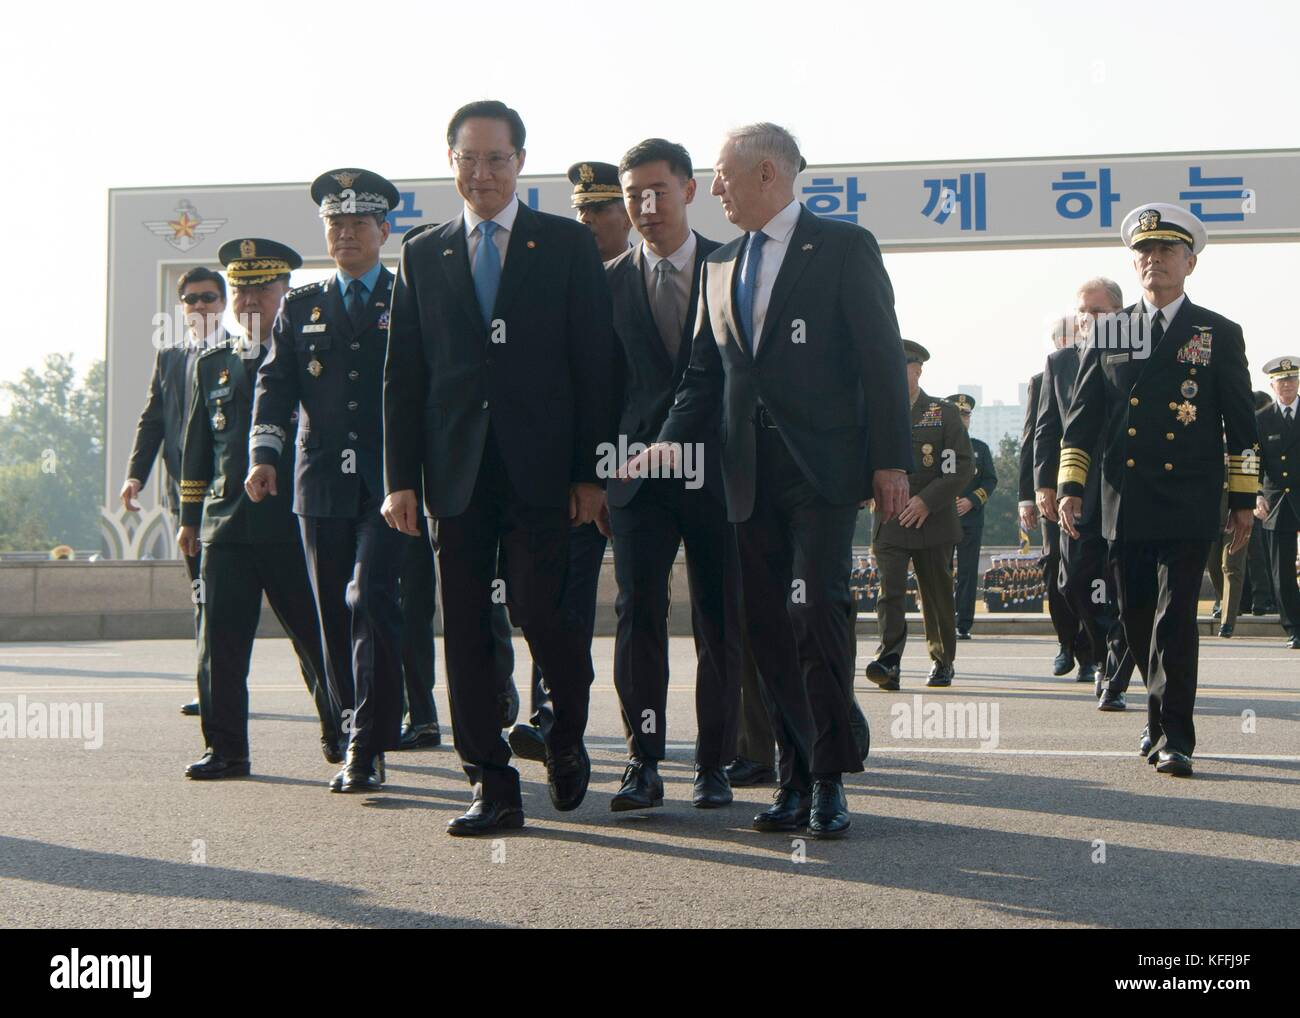 U.S Secretary of Defense James Mattis, right, and Korean Defense Minister Song Young-moo walk together to the 49th Stock Photo